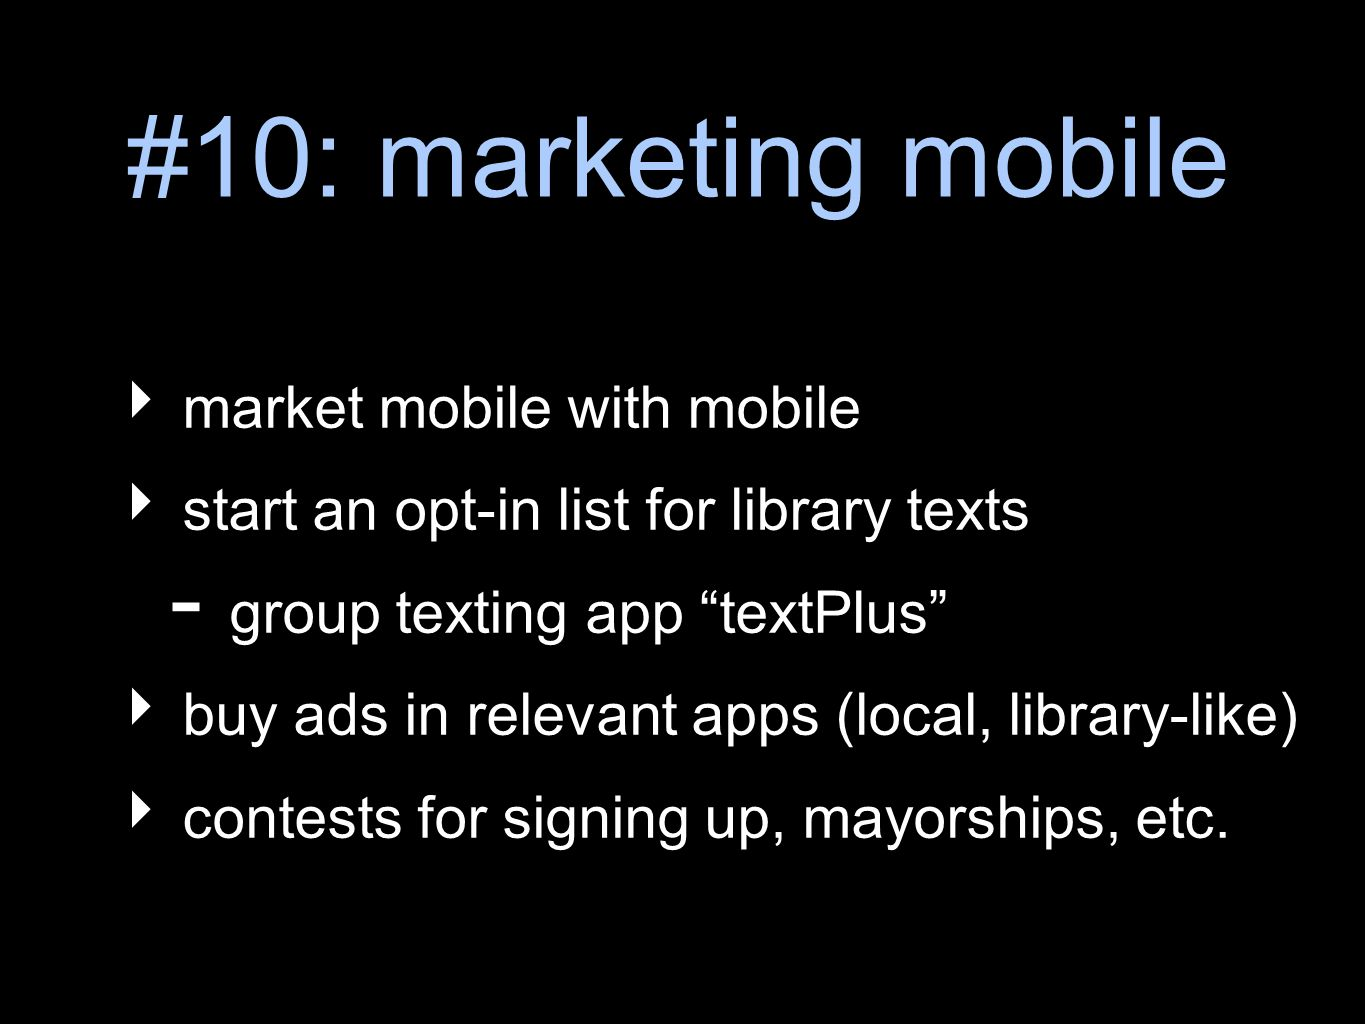 #10: marketing mobile market mobile with mobile start an opt-in list for library texts - group texting app textPlus buy ads in relevant apps (local, library-like) contests for signing up, mayorships, etc.